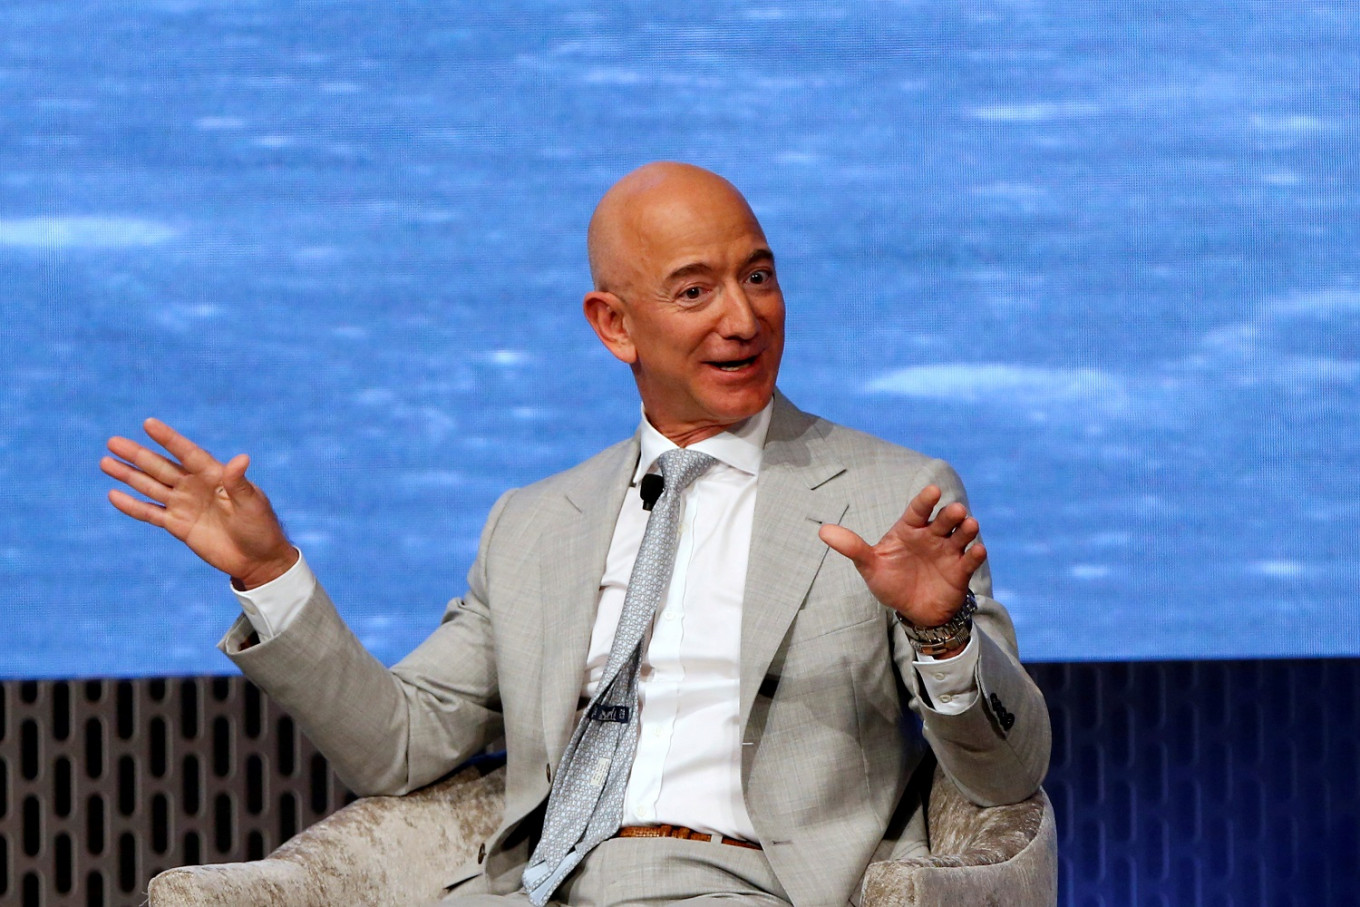 Jeff Bezos Resigns: Read Between the Lines